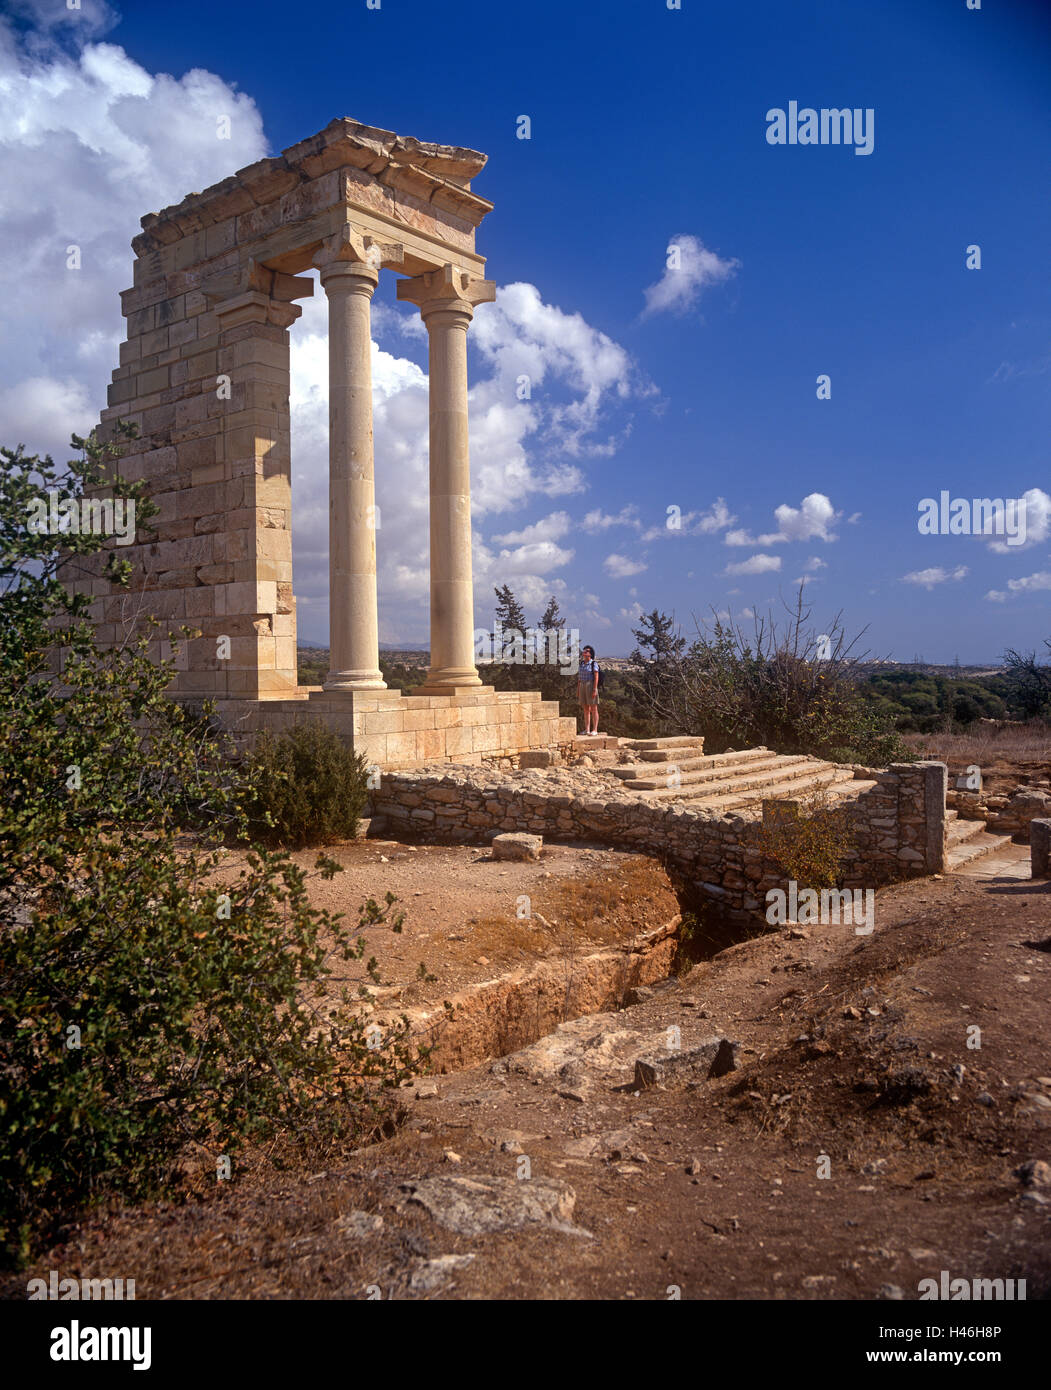 Ruins of Temple Apollo Limassol Cyprus - Stock Image